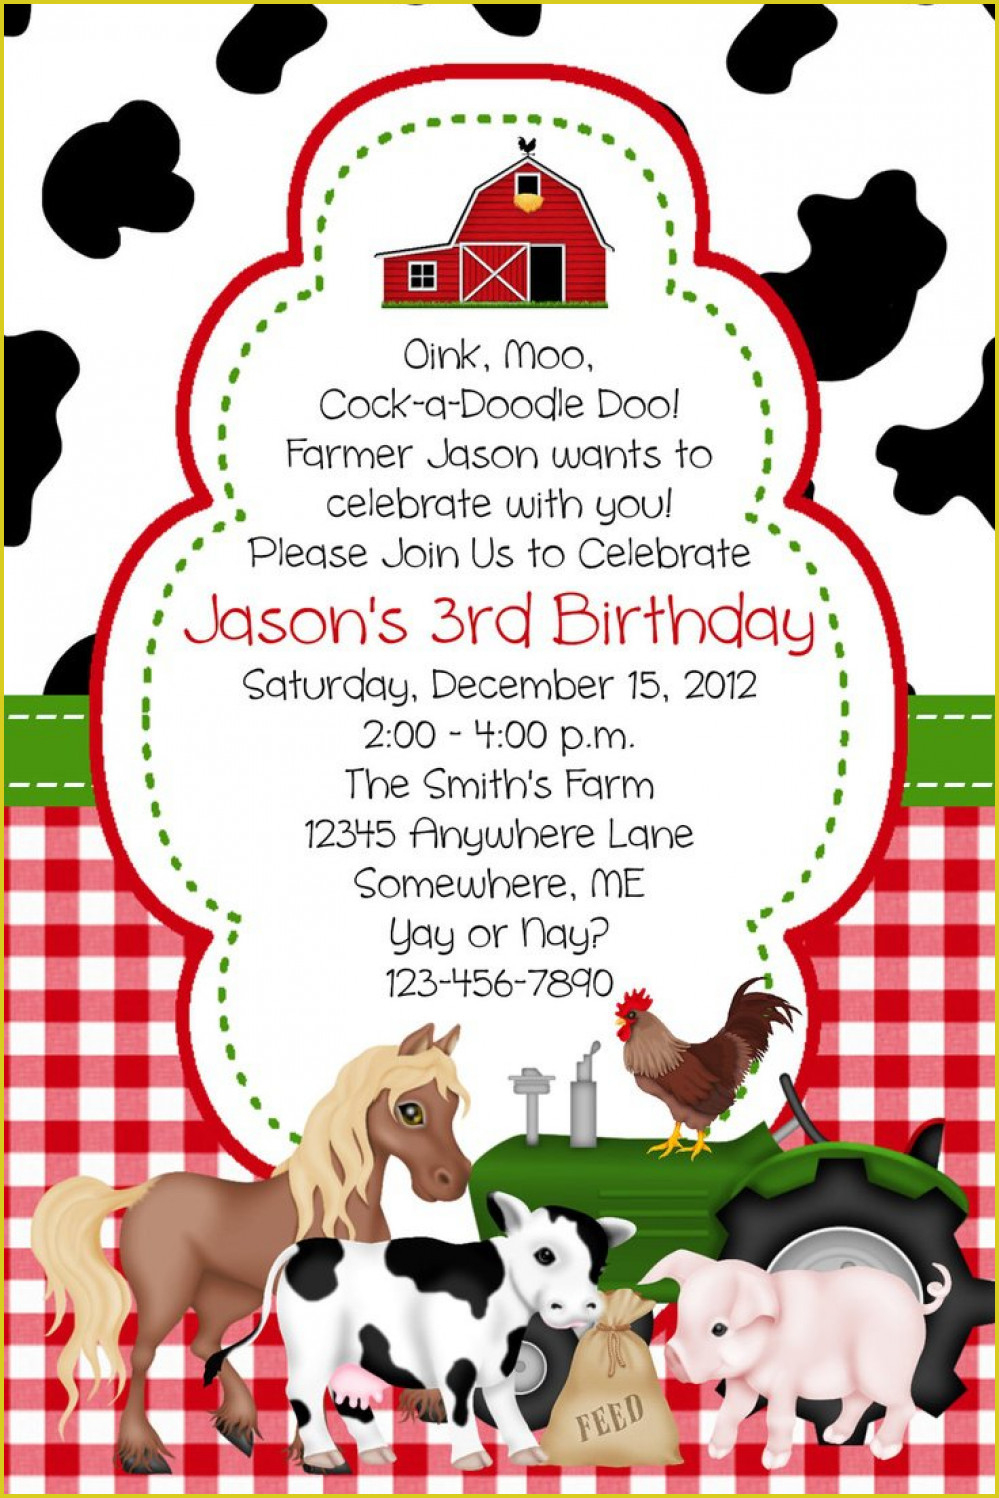 Marvelous Farm Birthday Invitations Which Can Be Used As Free - Free Printable Farm Birthday Invitations